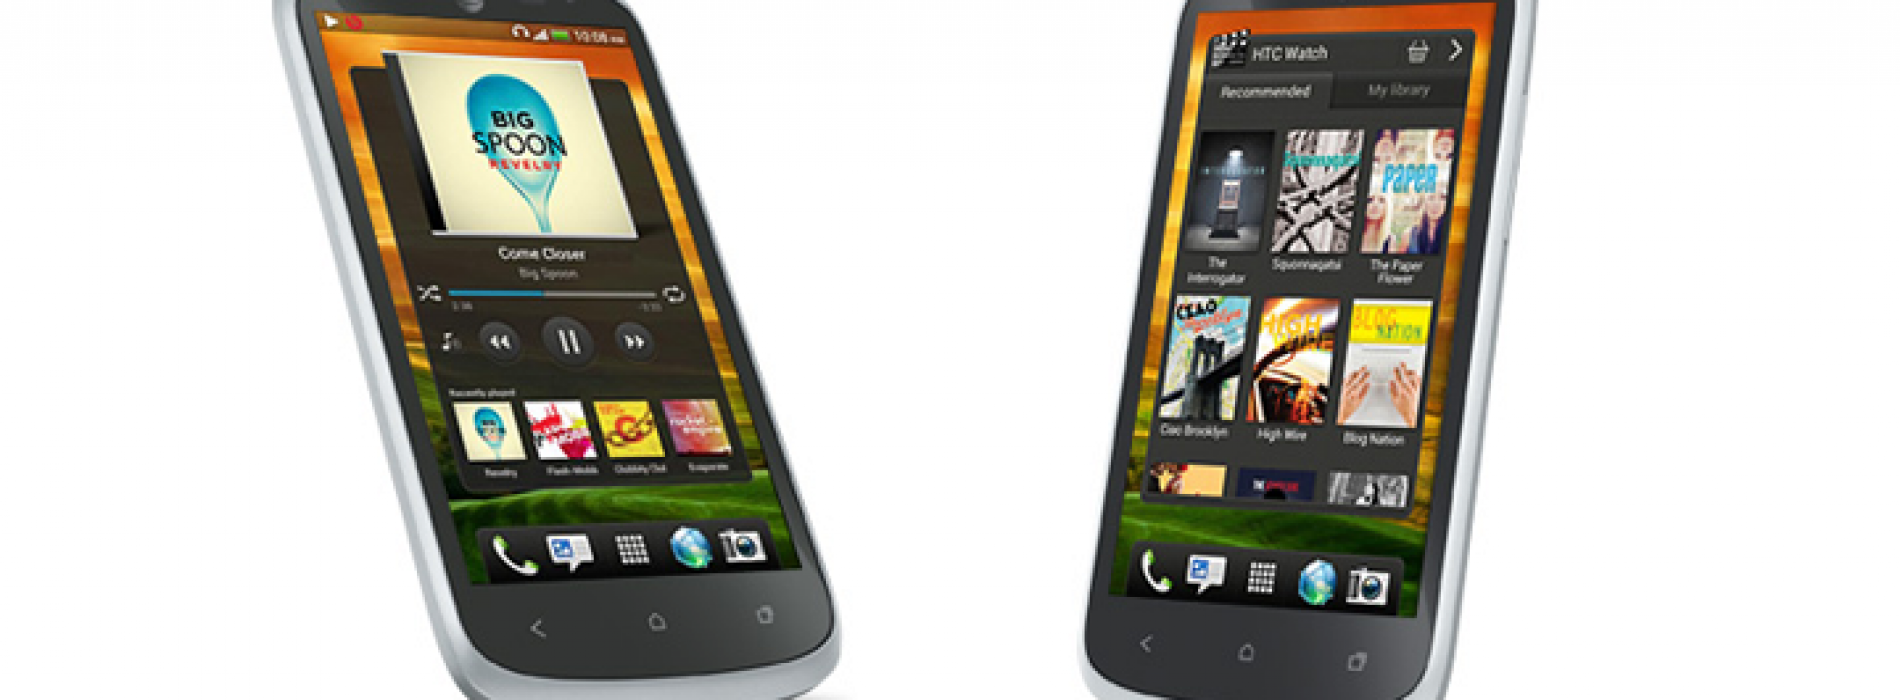 AT&T now offering $50 HTC One VX